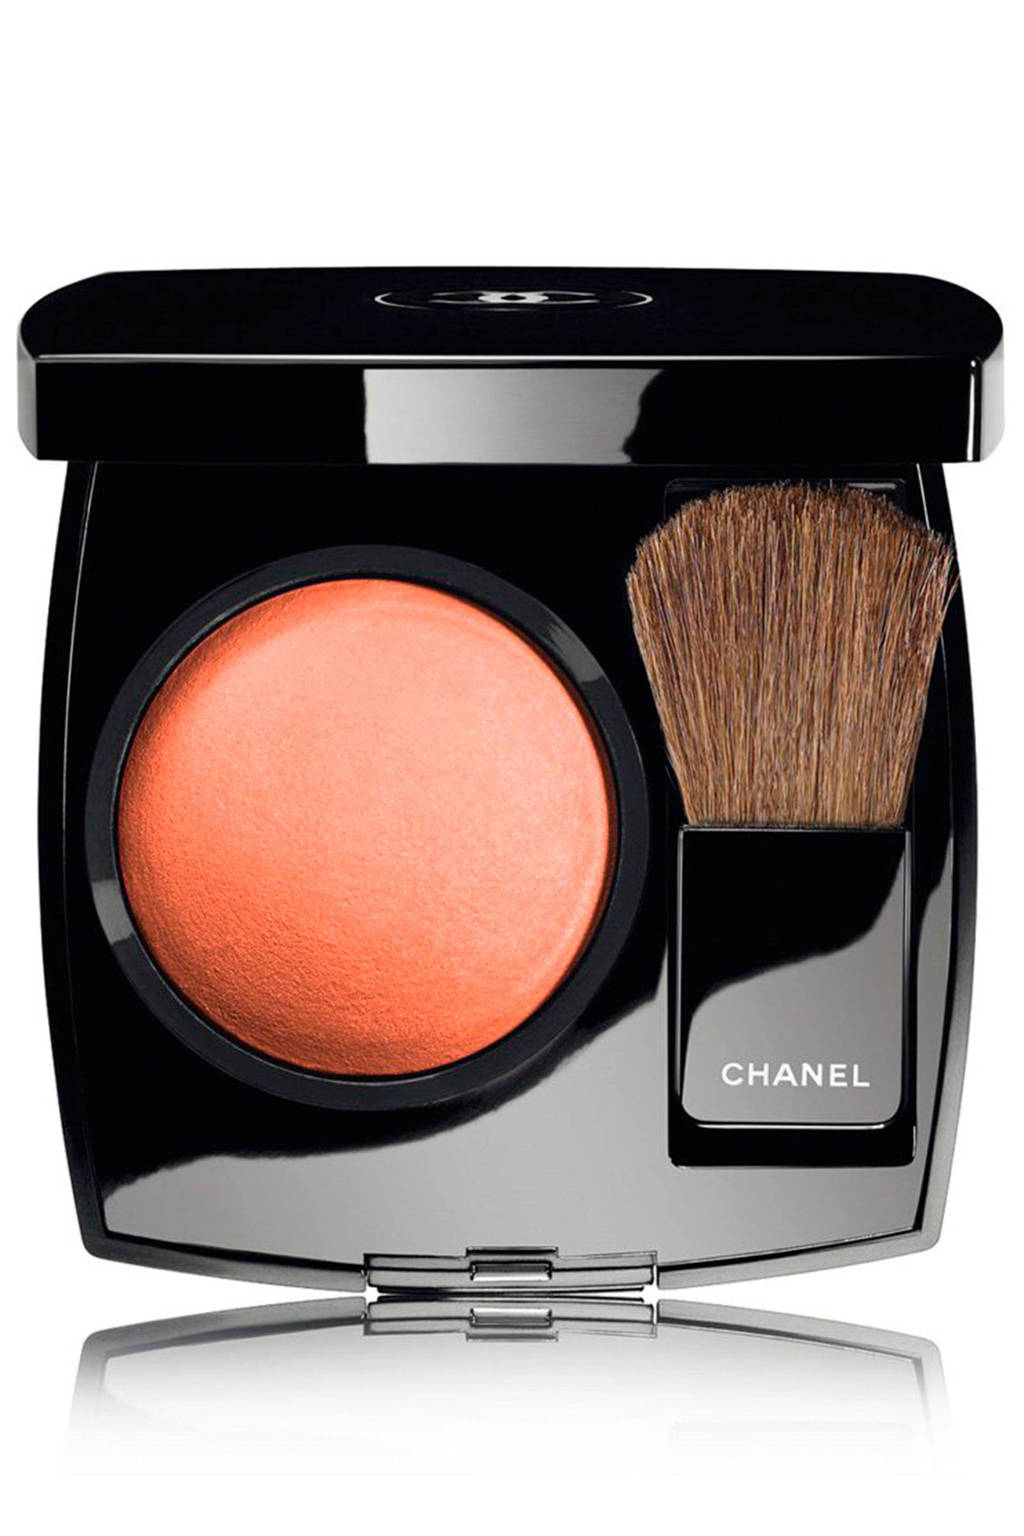 Chanel Joue Contraste blush - 03 Brume d'Or